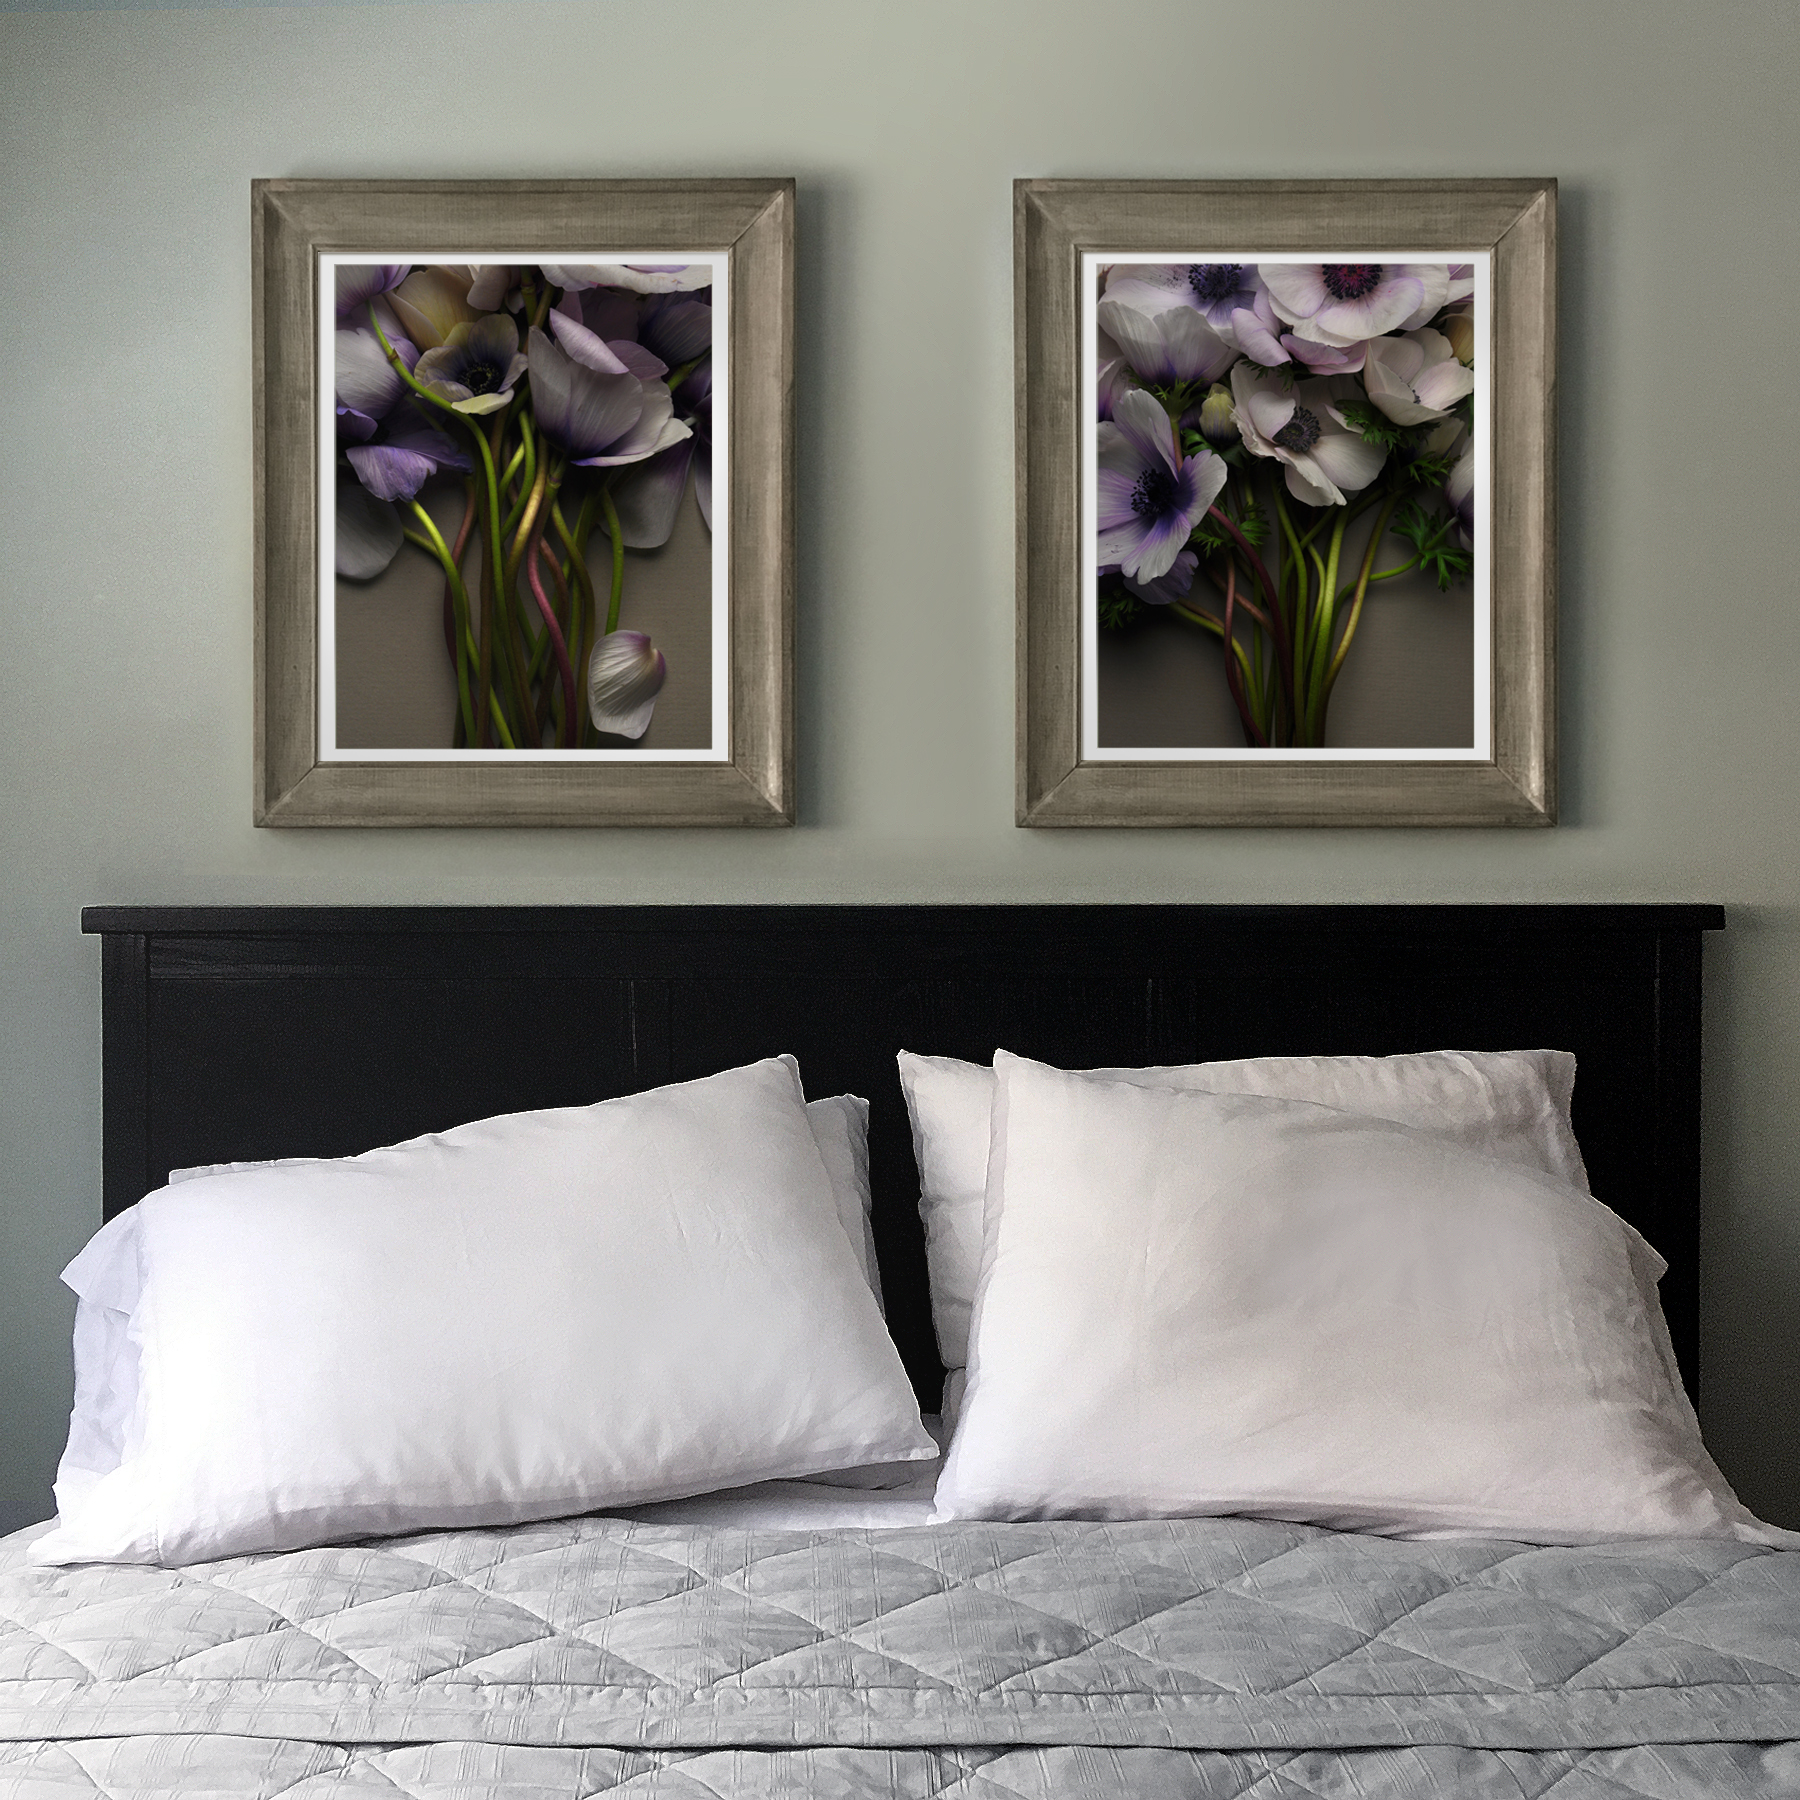 Anemones Over the Bed